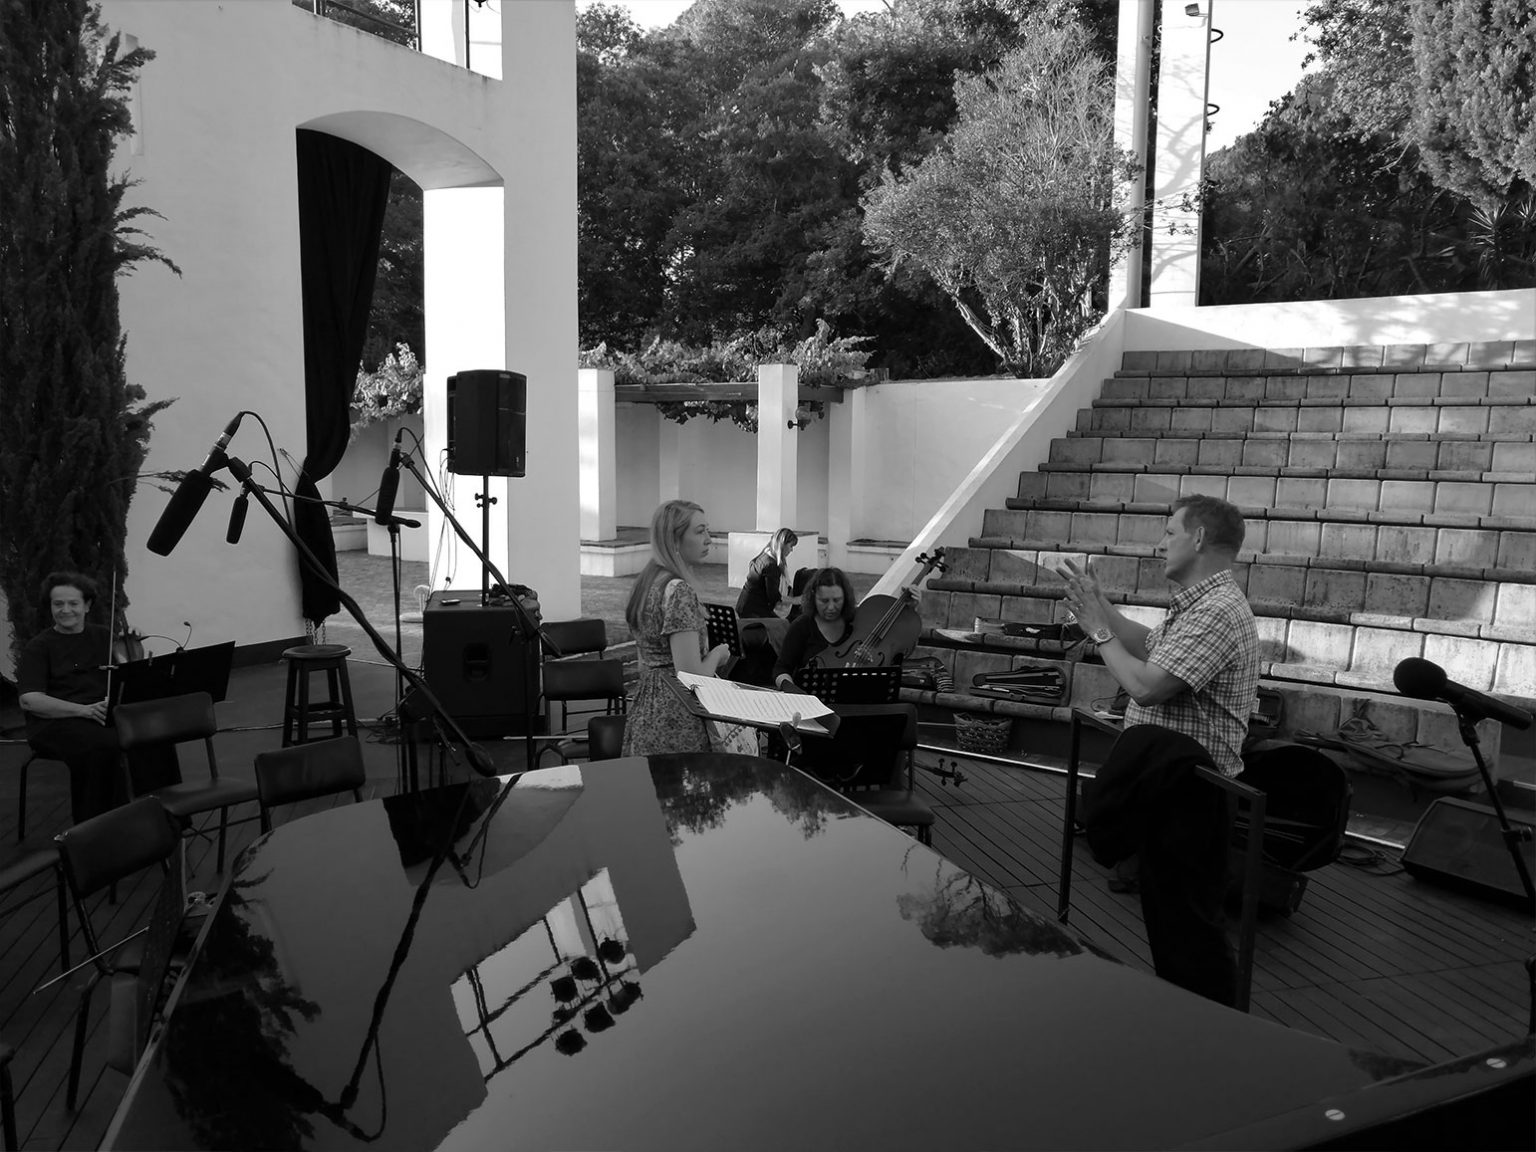 Shades-of-Africa-07-Oude-Libertas-Rehearsals